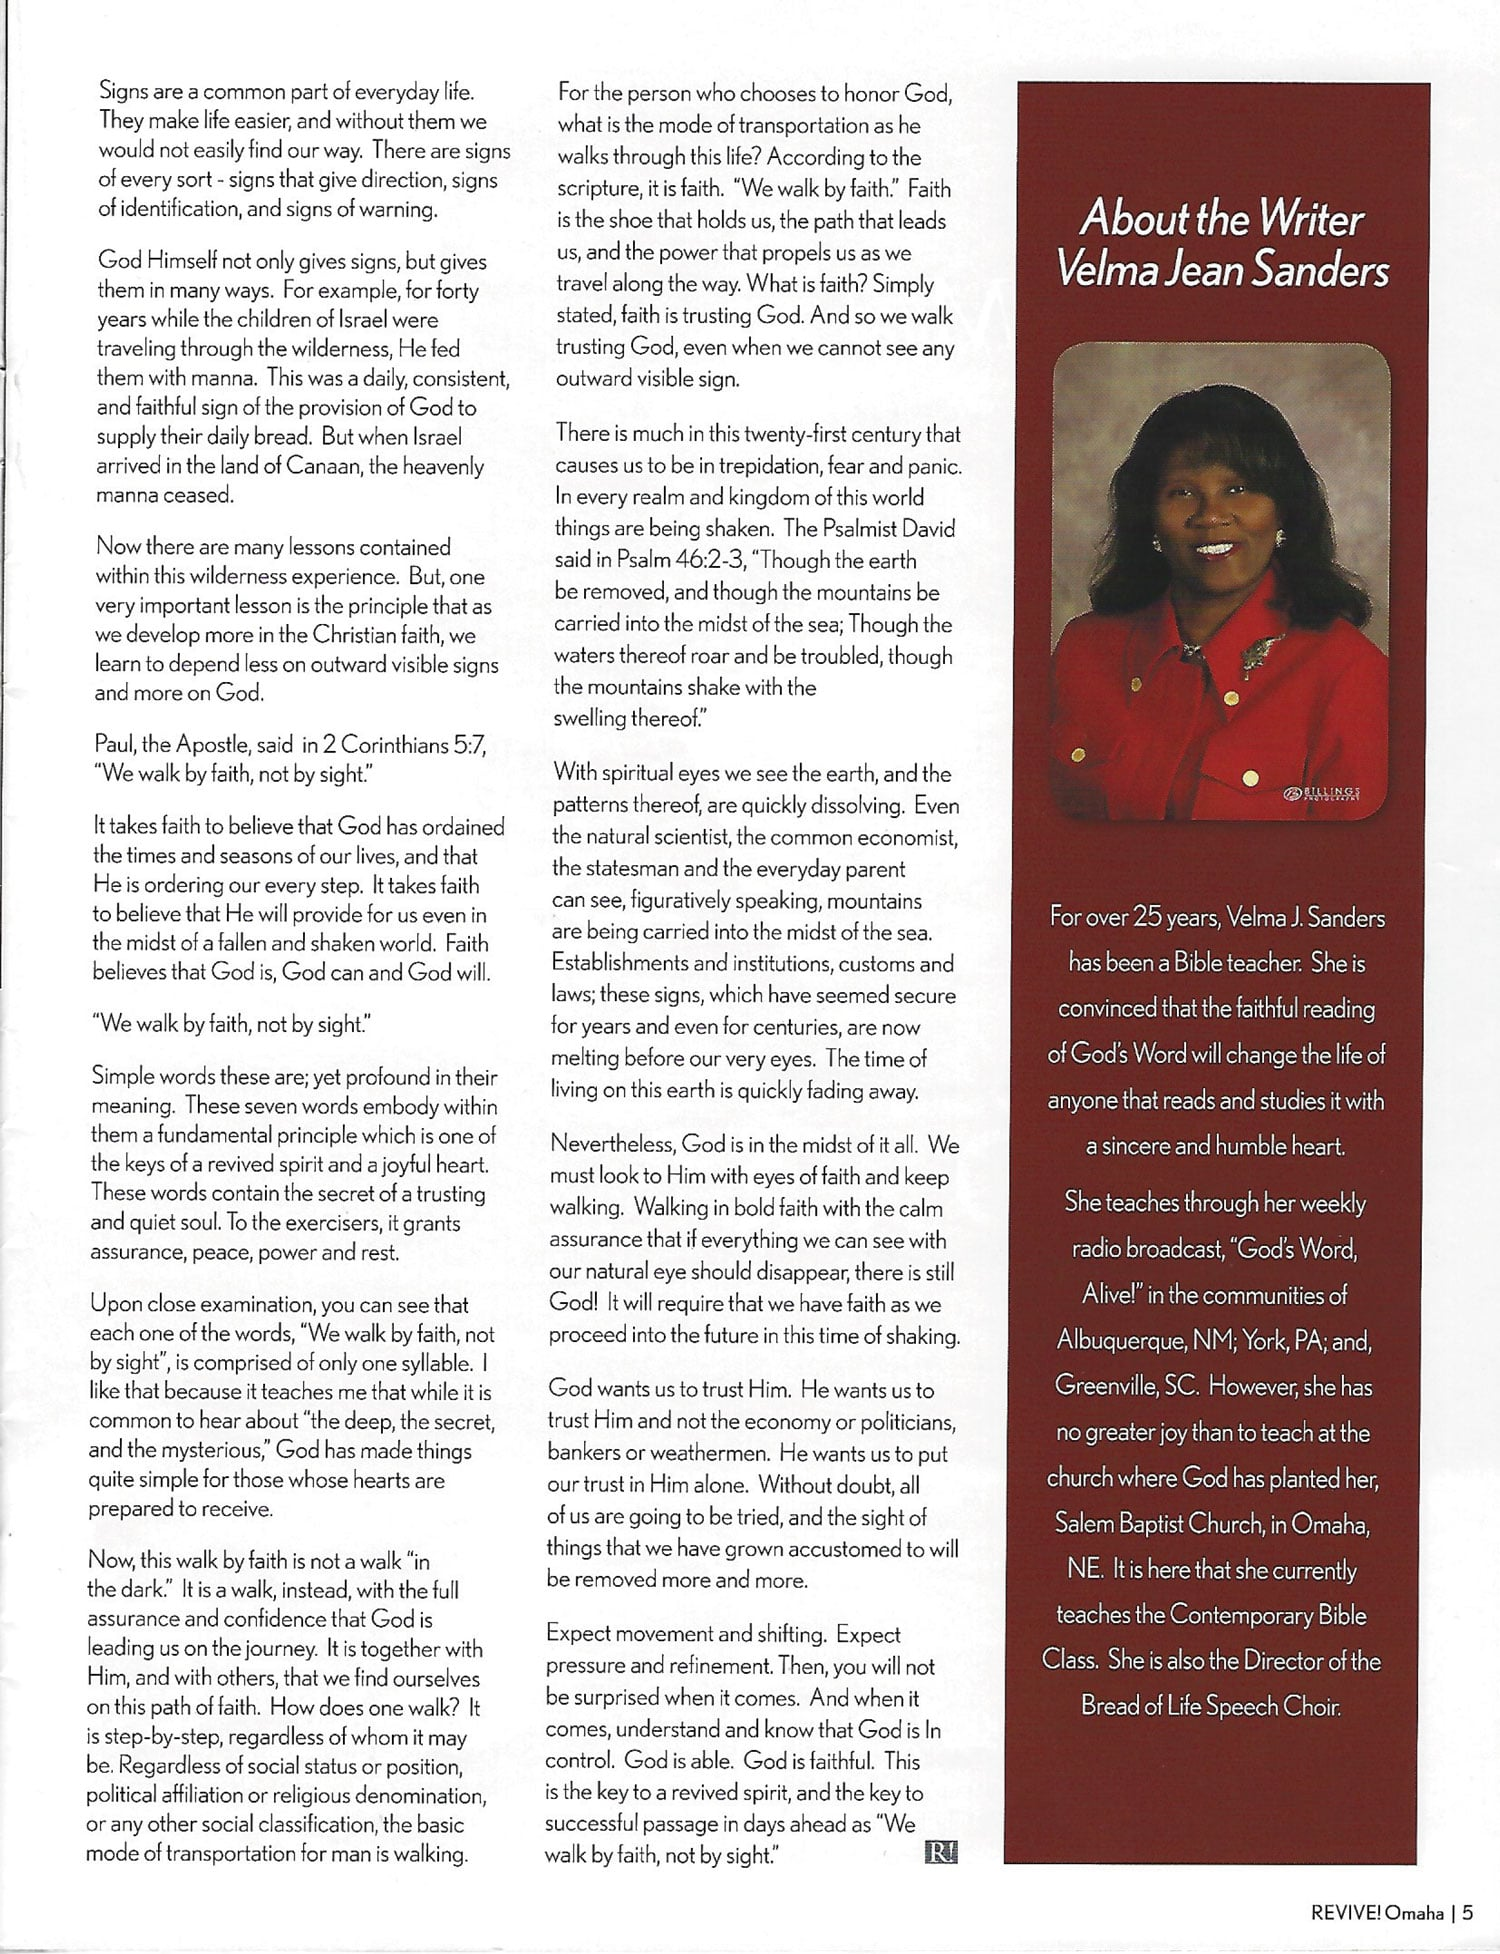 Velma Featured in REVIVE! Omaha | God's Word Alive